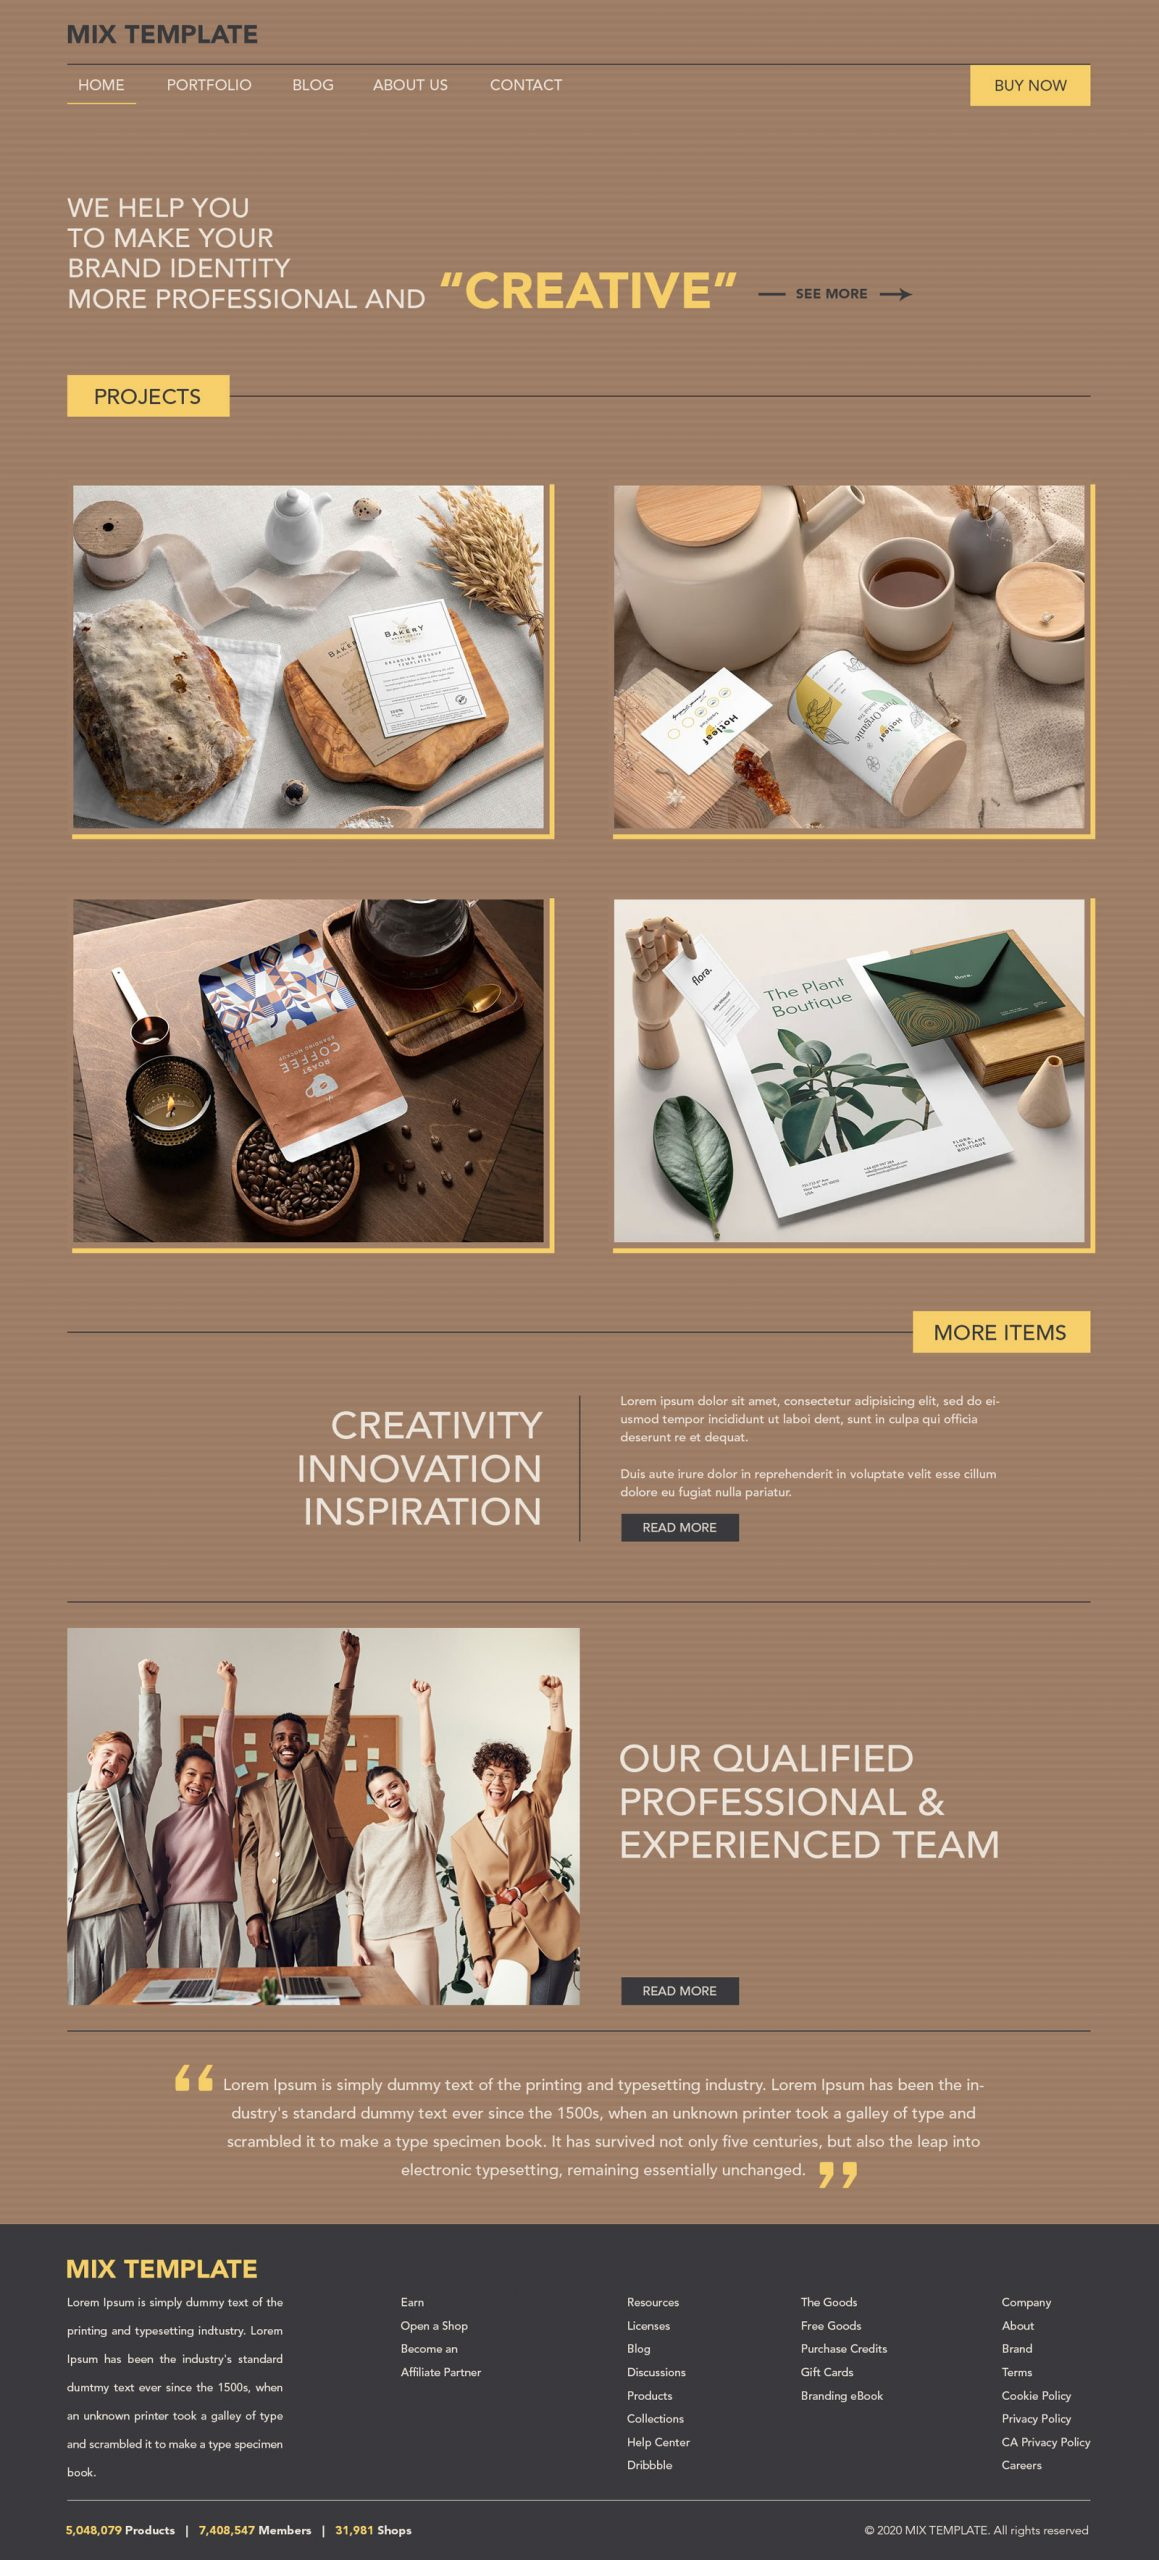 Free-Creative-Graphics-Agency-Website-PSD-Template-Preview